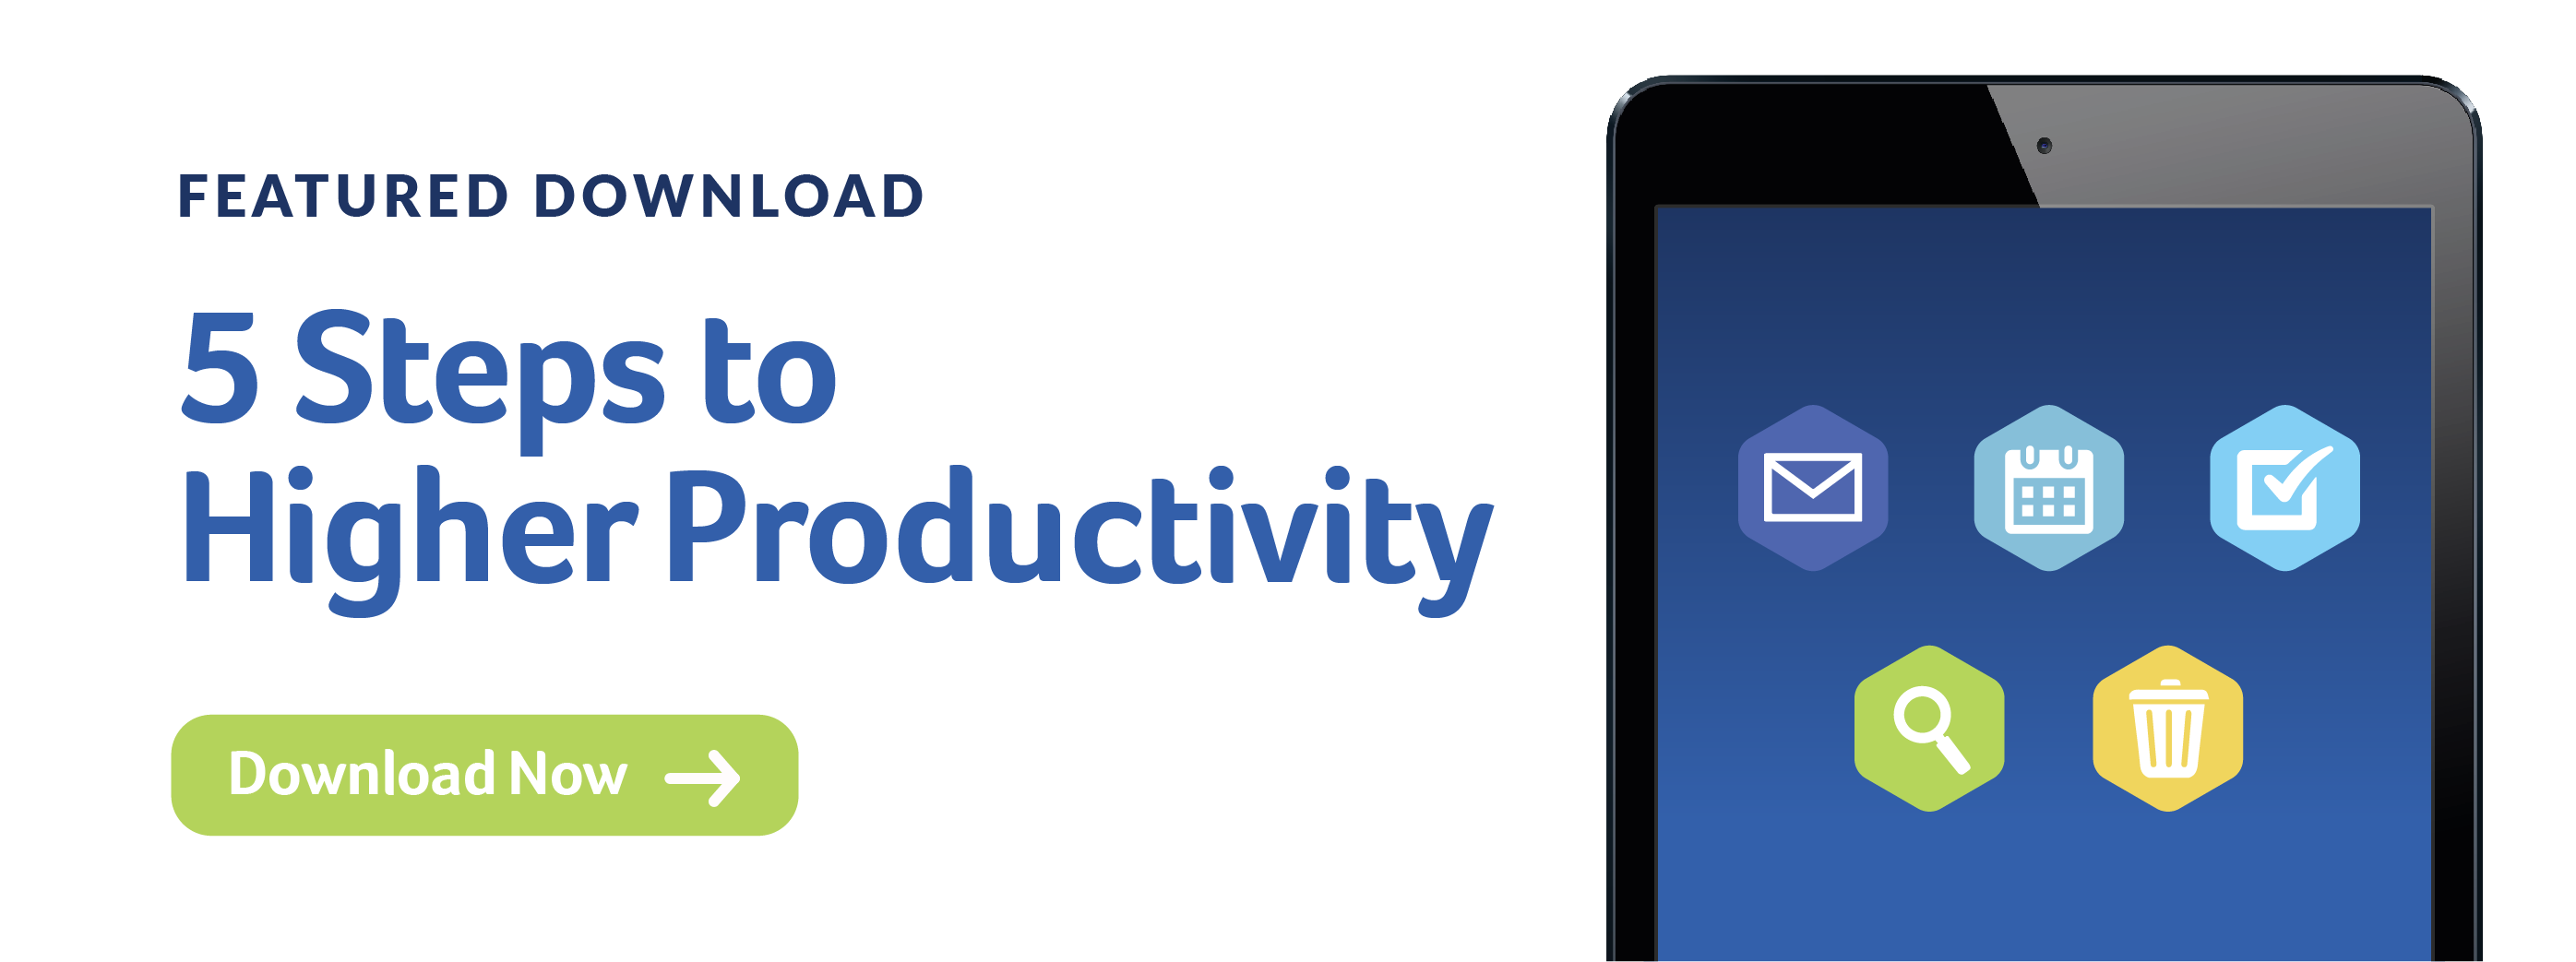 5 Steps to Higher Productivity Download